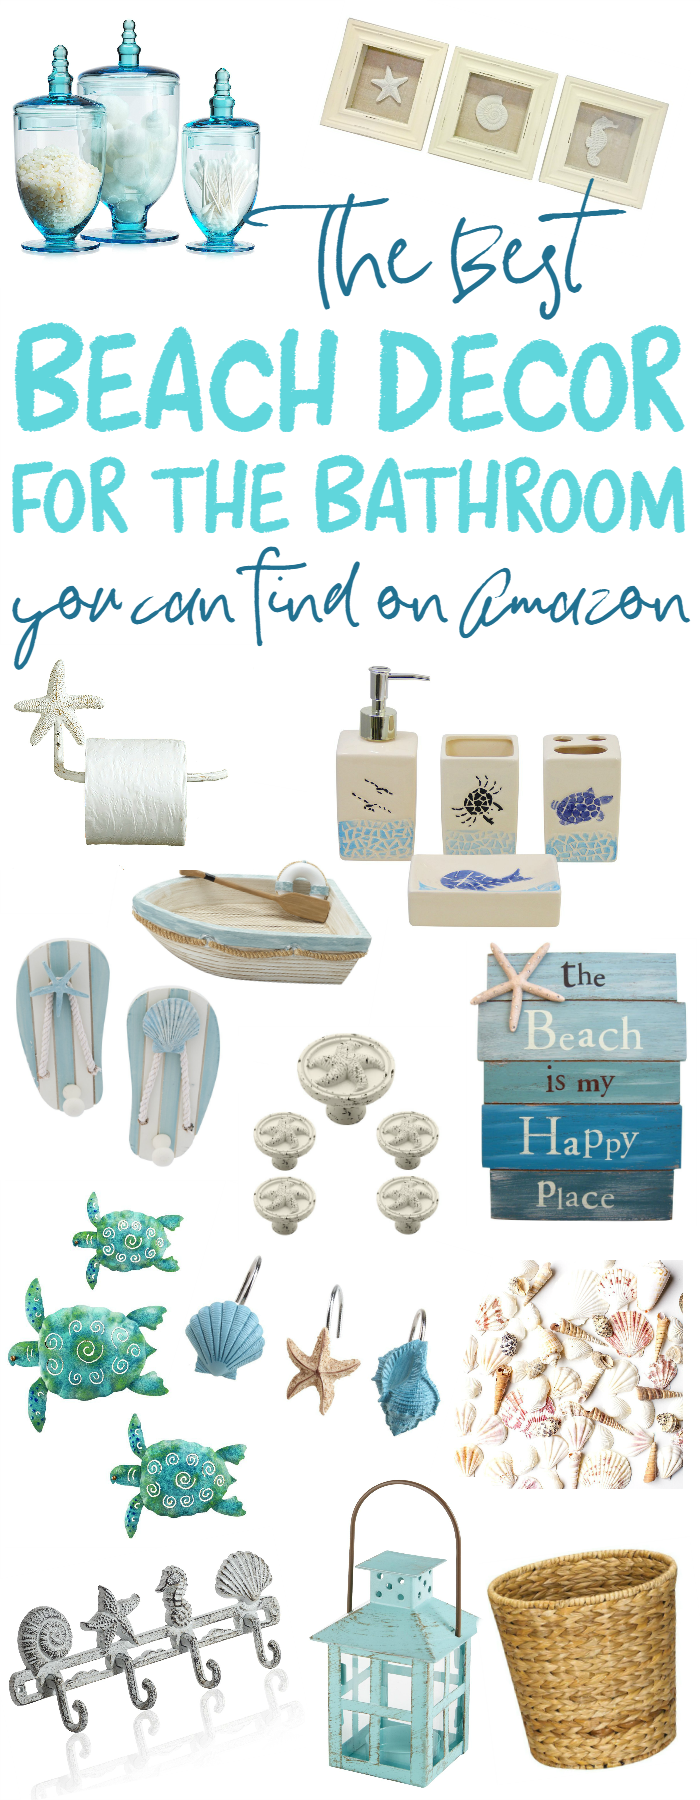 You need to see these great finds on Amazon to decorate your bathroom with a beach theme!